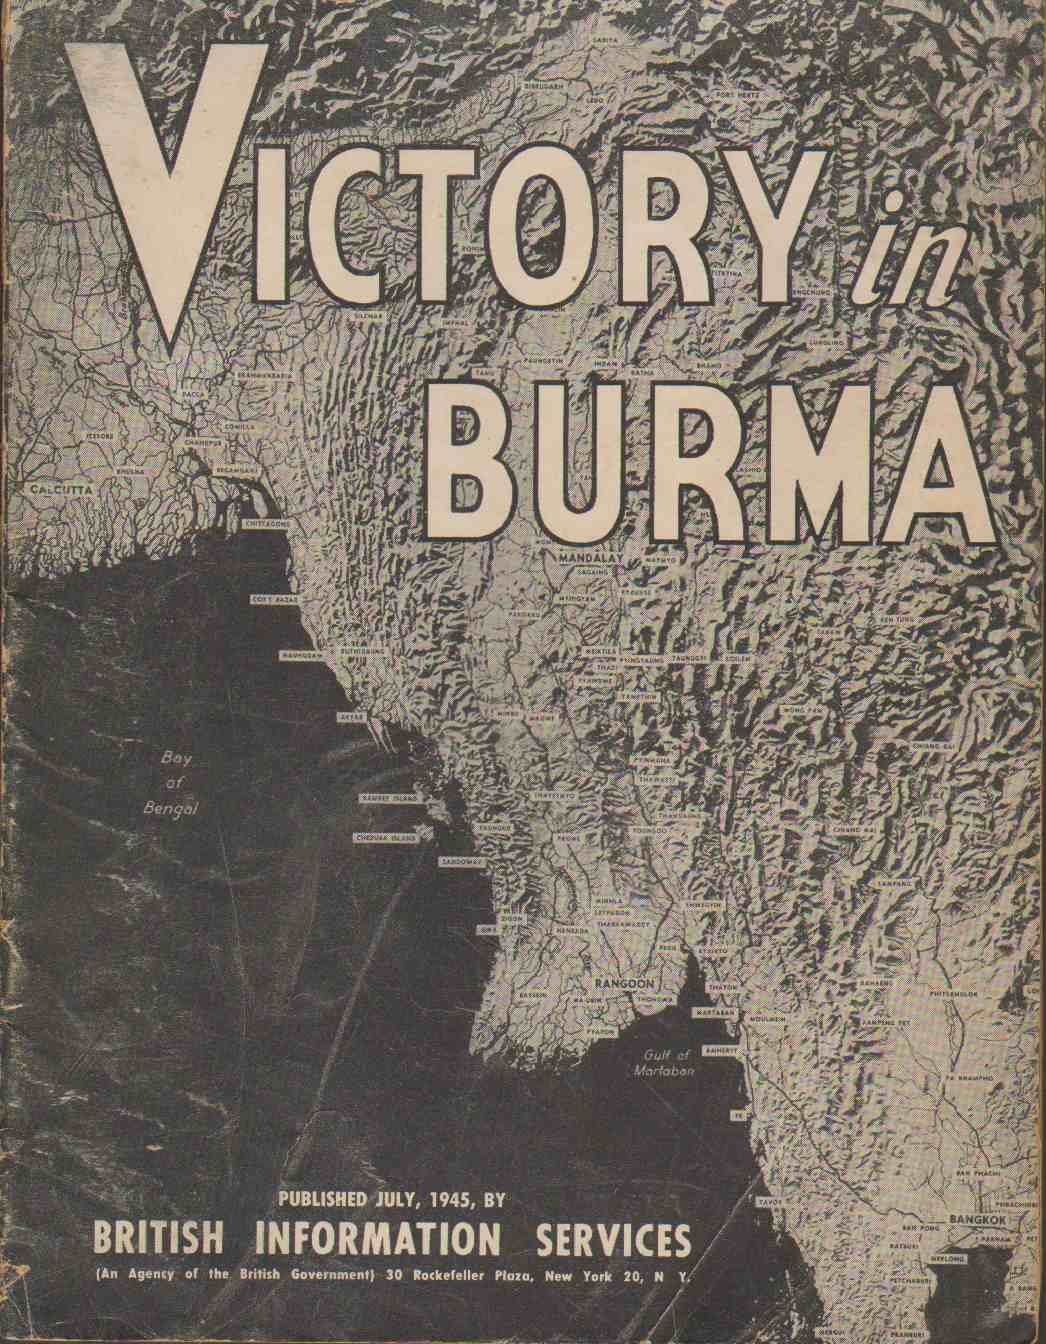 VICTORY IN BURMA, British Information Services